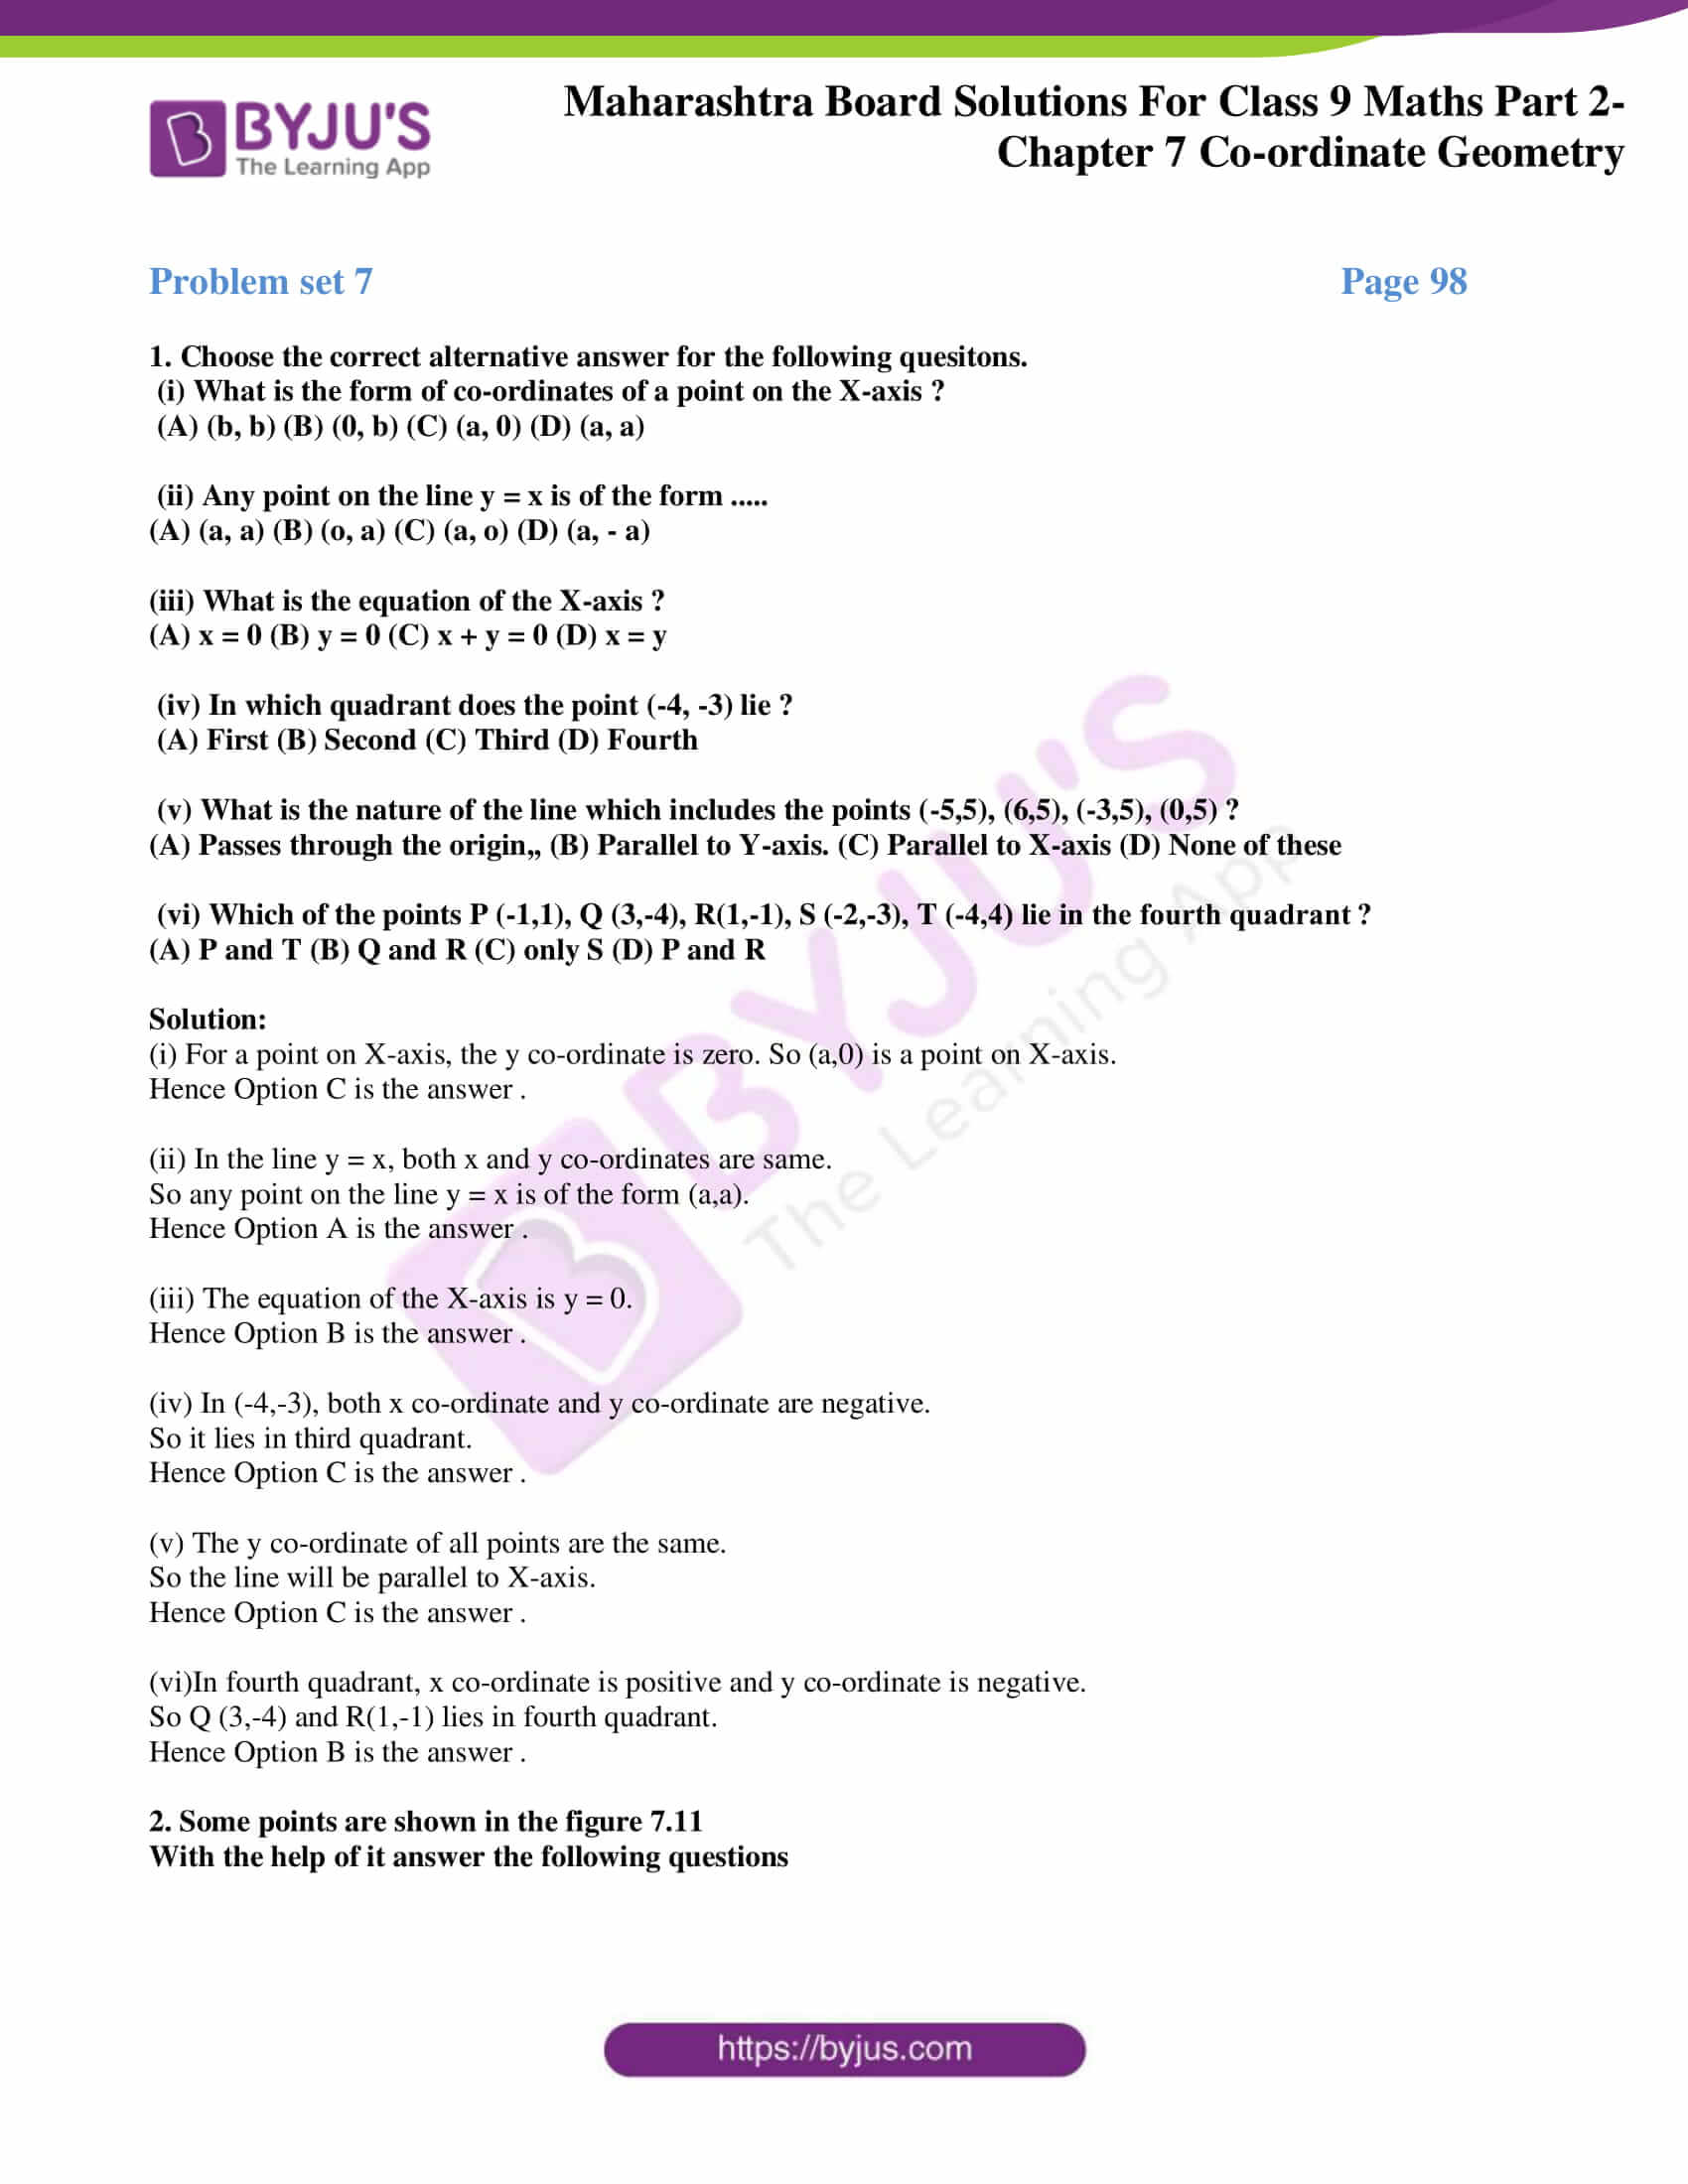 msbshse solutions for class 9 maths part 2 chapter 7 10